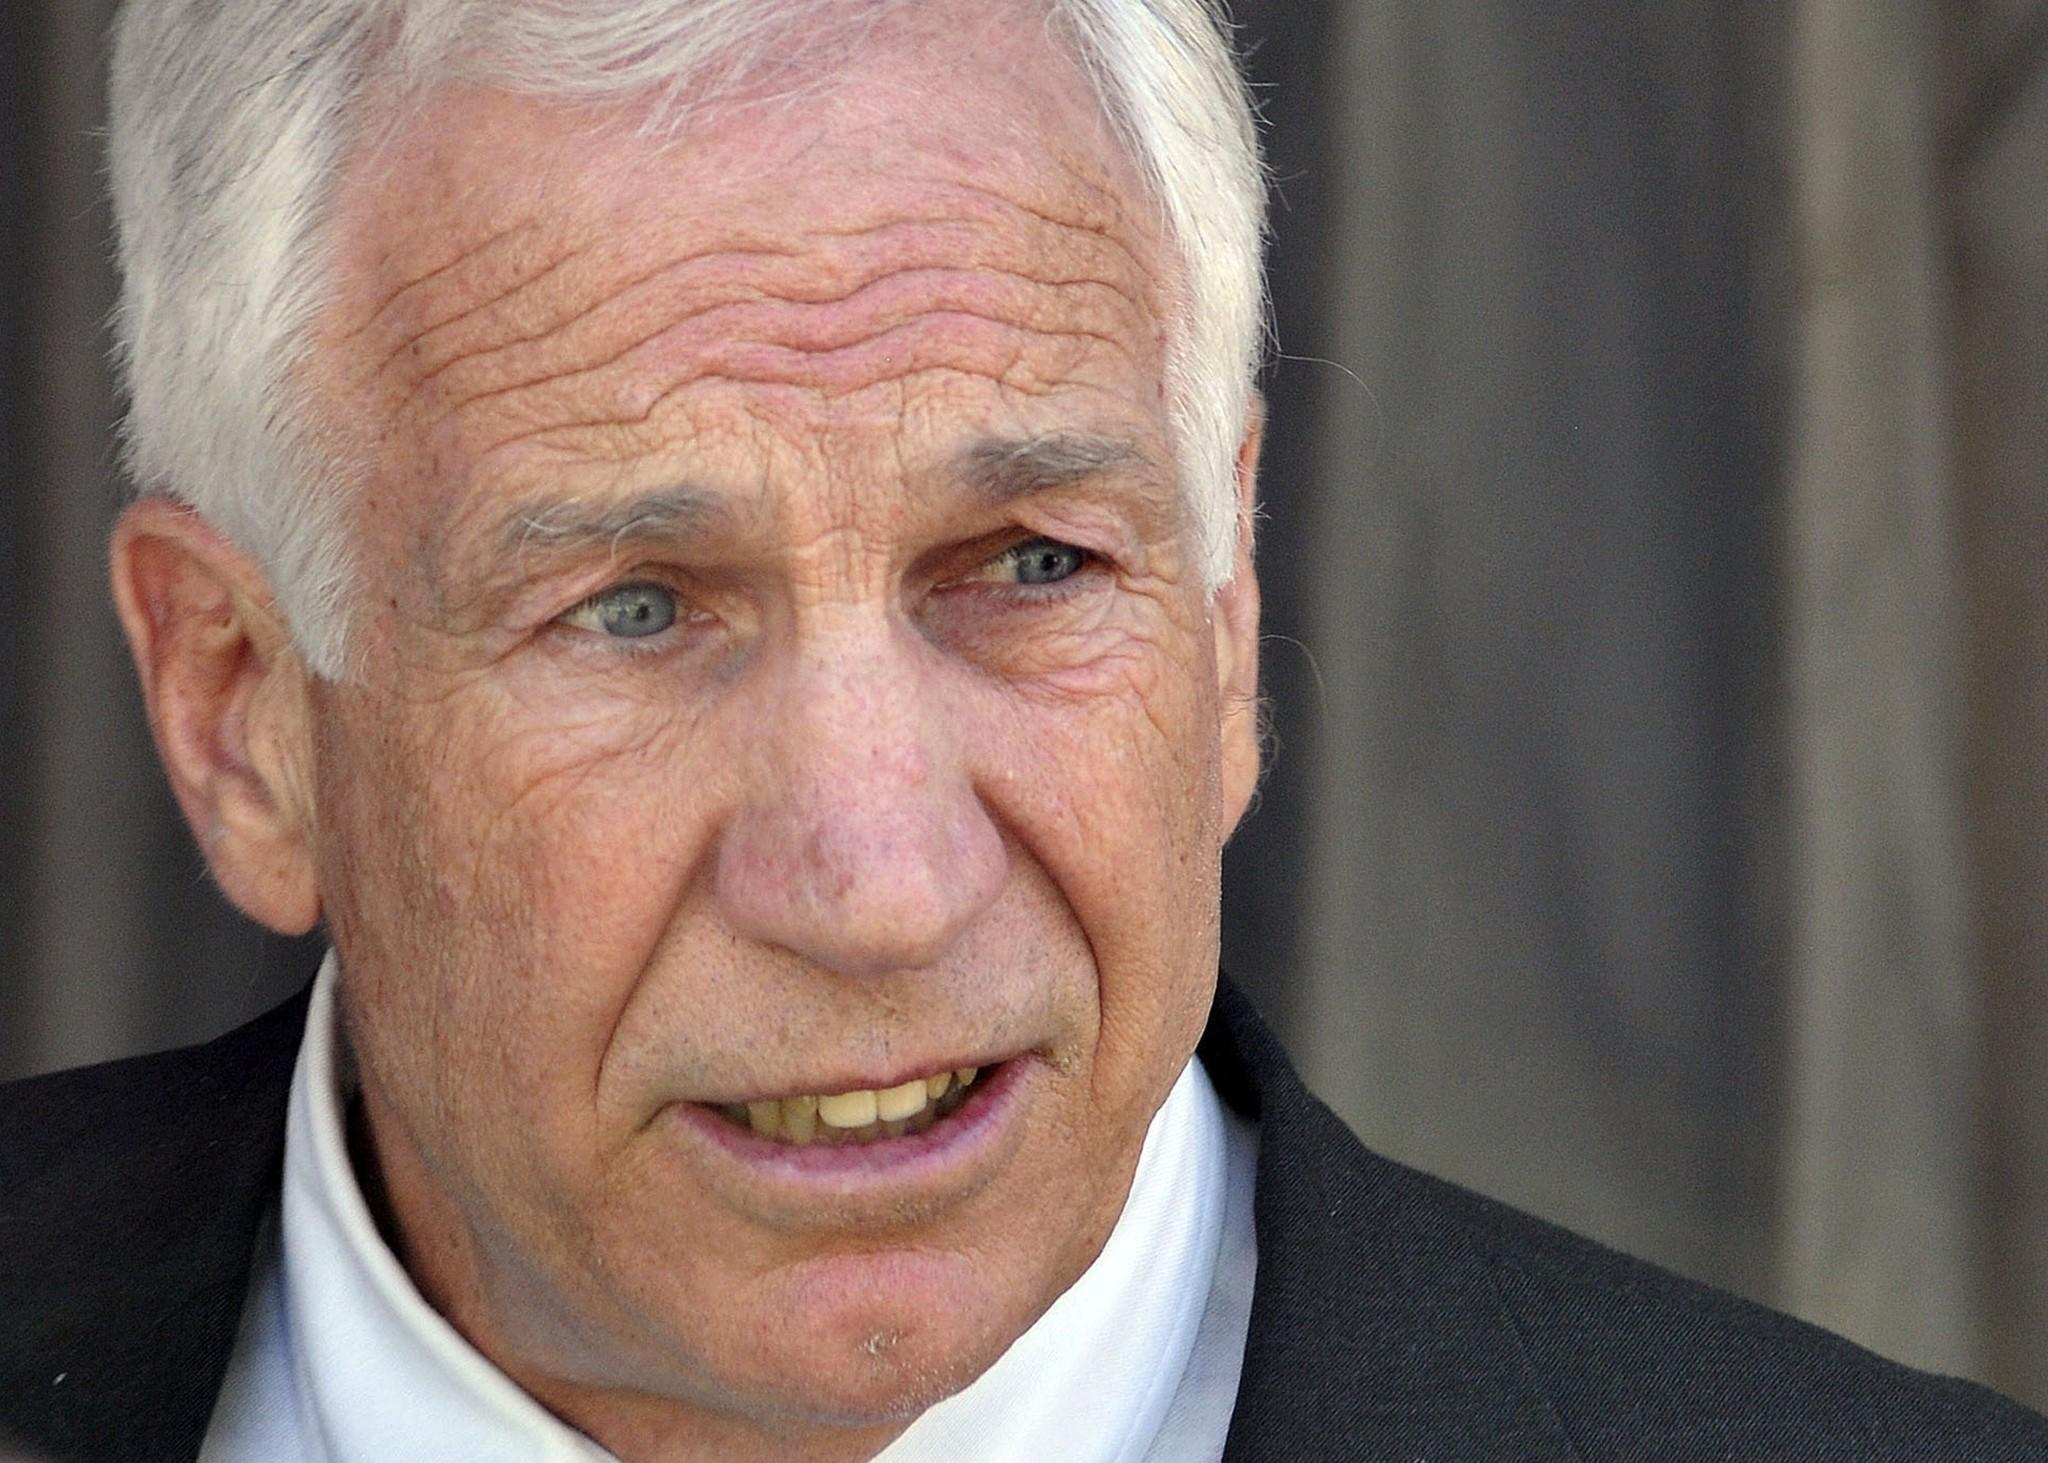 Former Penn State assistant football coach Jerry Sandusky is seeking to have his pension restored.